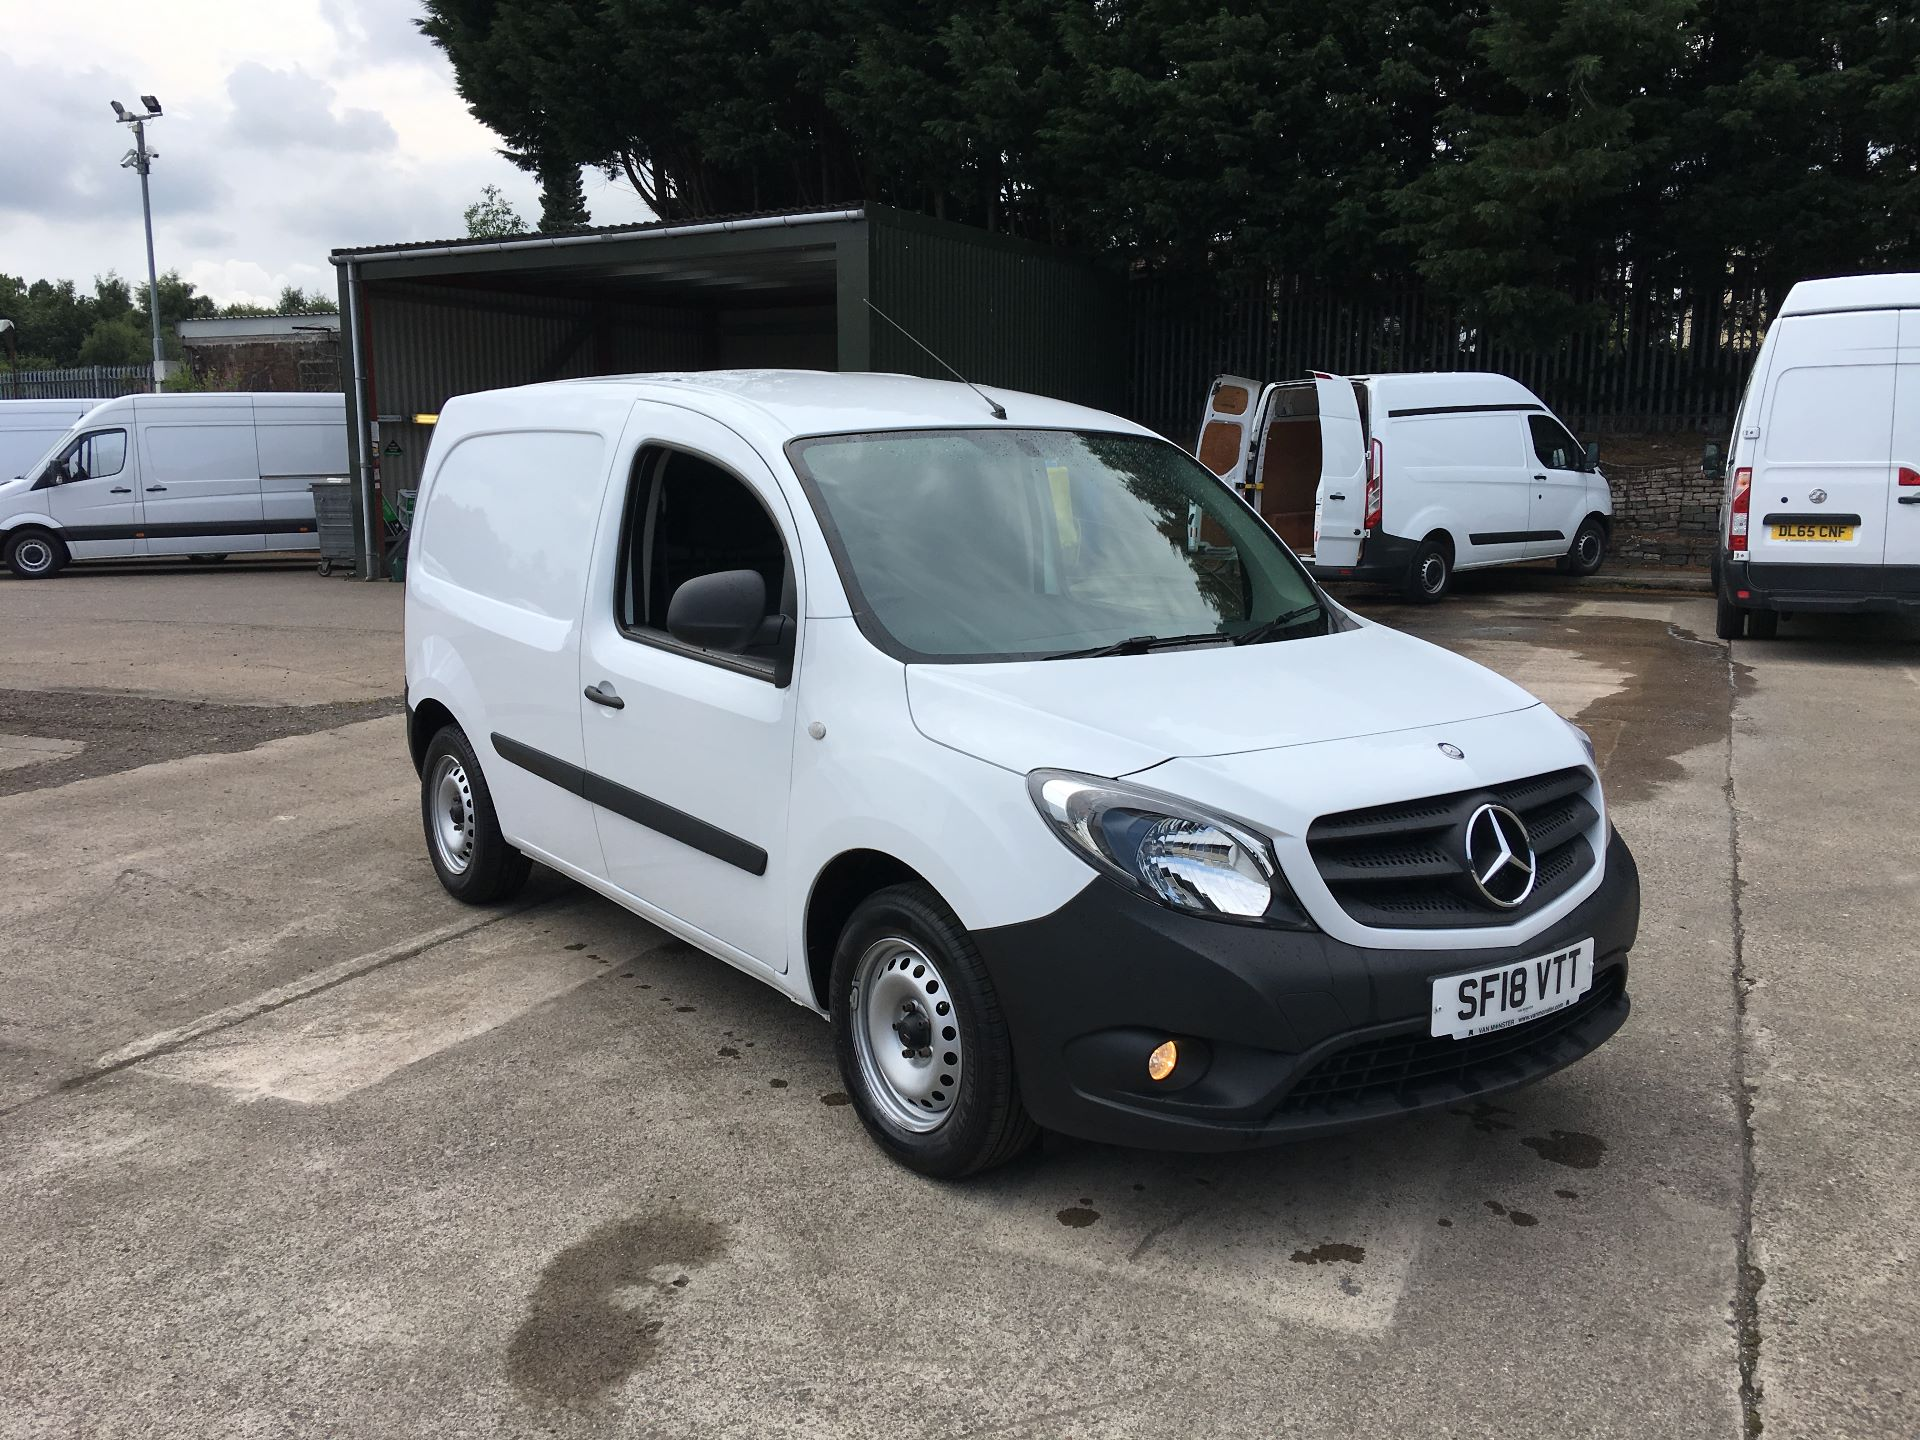 2018 Mercedes-Benz Citan LWB 109 CDI BLUE EFFICIENCY VAN EURO 5/6 (SF18VTT) Thumbnail 1